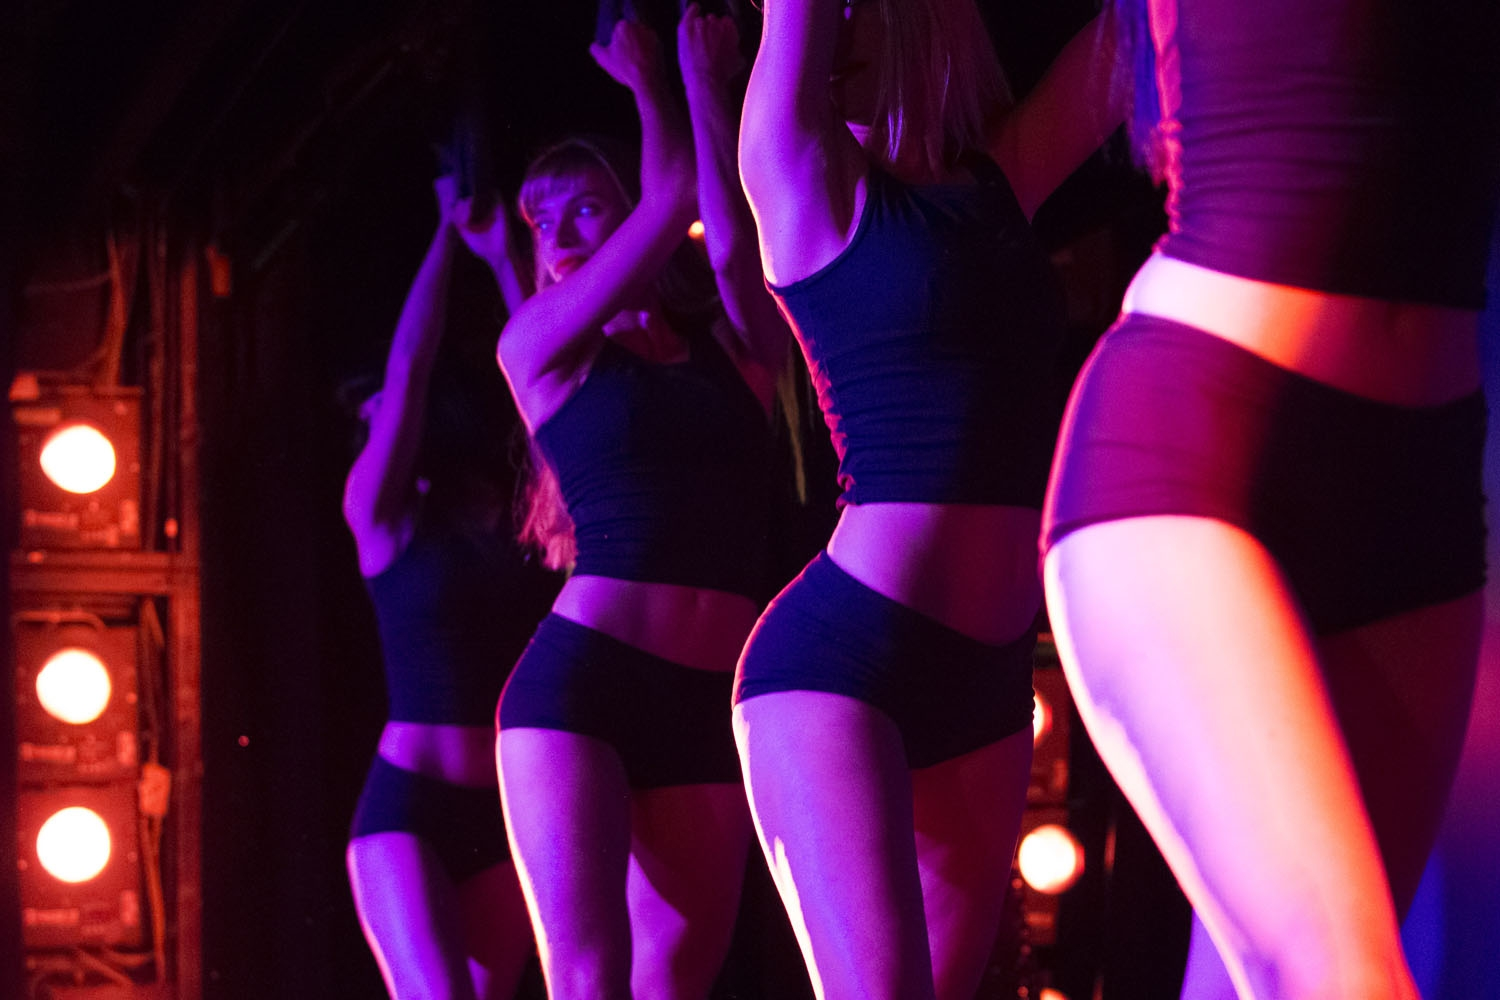 Dancers rehearse a show on the stage of the Parisian cabaret Crazy Horse on September 15, 2017 in Paris.